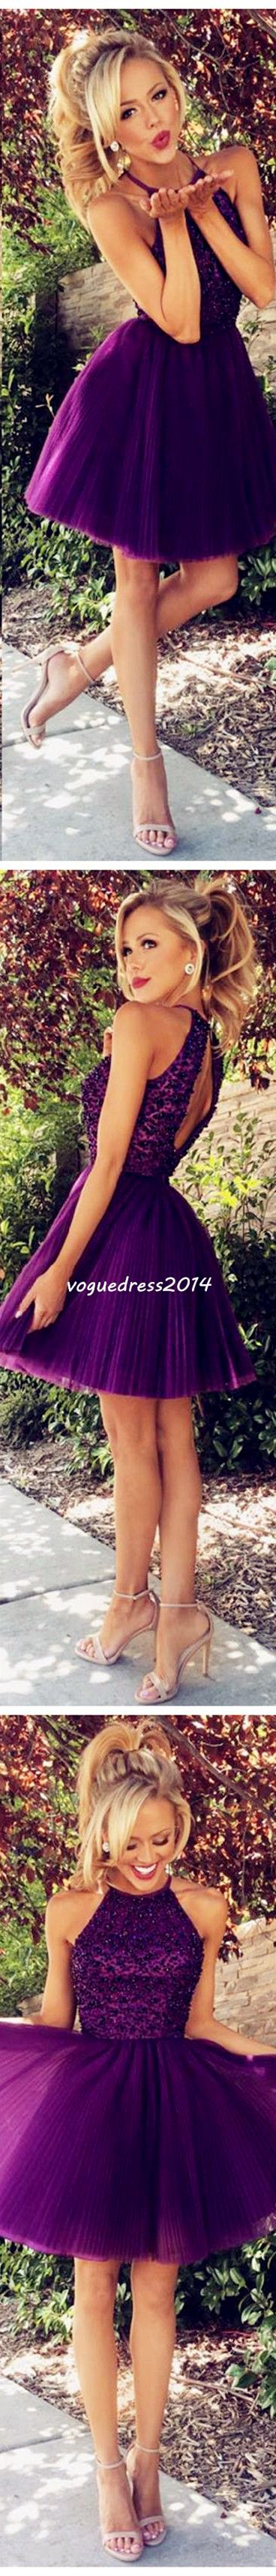 Purple High Neck open back homecoming dress,short prom dress. #promdress #homecomingdress #shortprom #homecoming Buy it @ http://diydressonline.storenvy.com/collections/964335-homecoming-dresses/products/14029836-a-line-high-neck-black-beaded-bodice-grape-tulle-short-prom-homecoming-dress